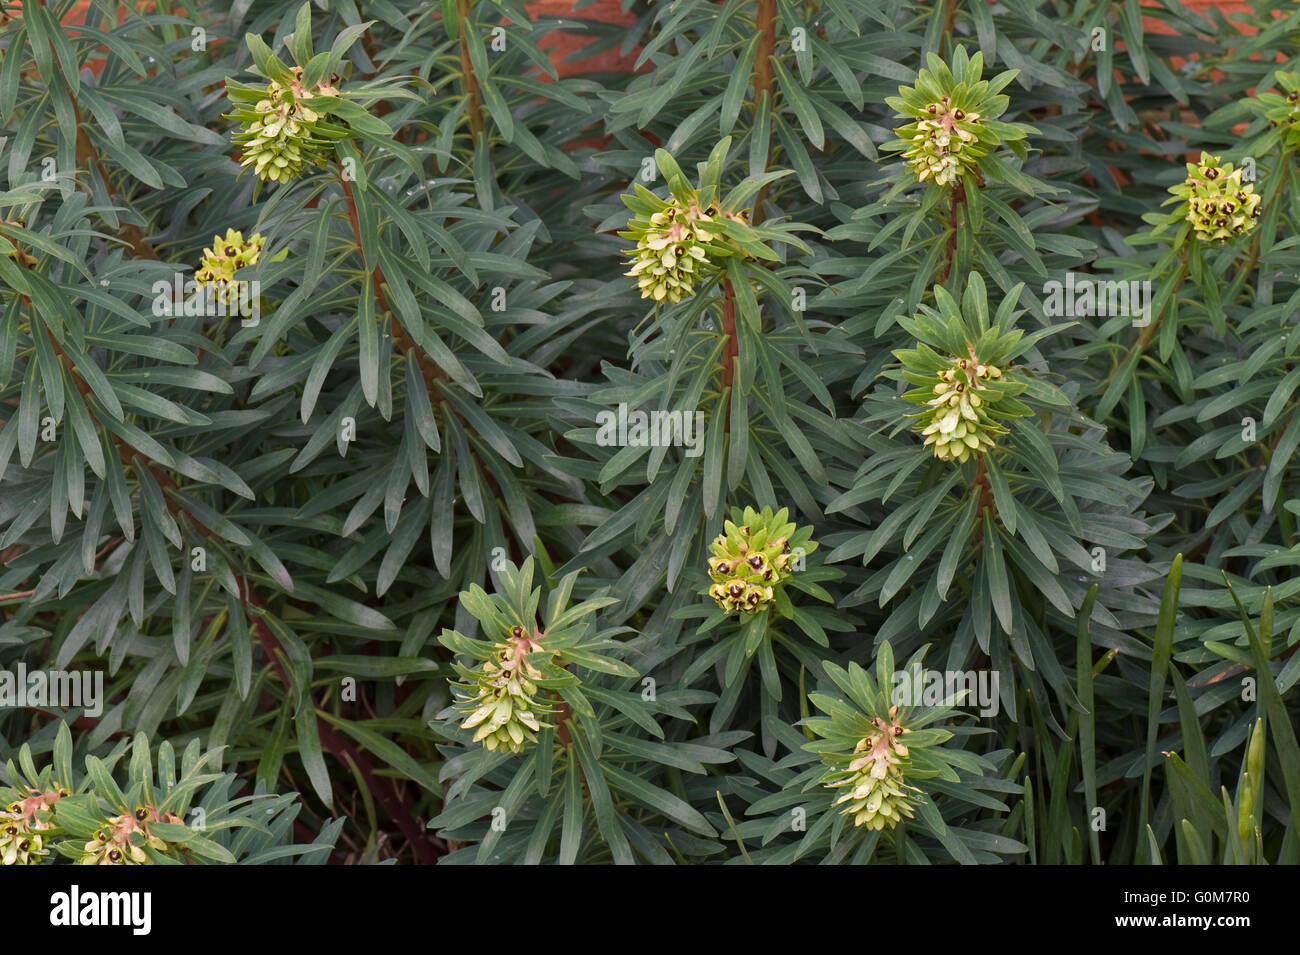 Euphorbia characias 'Black Pearl' unfolding as it comes into flower, Berkshire, march - Stock Image